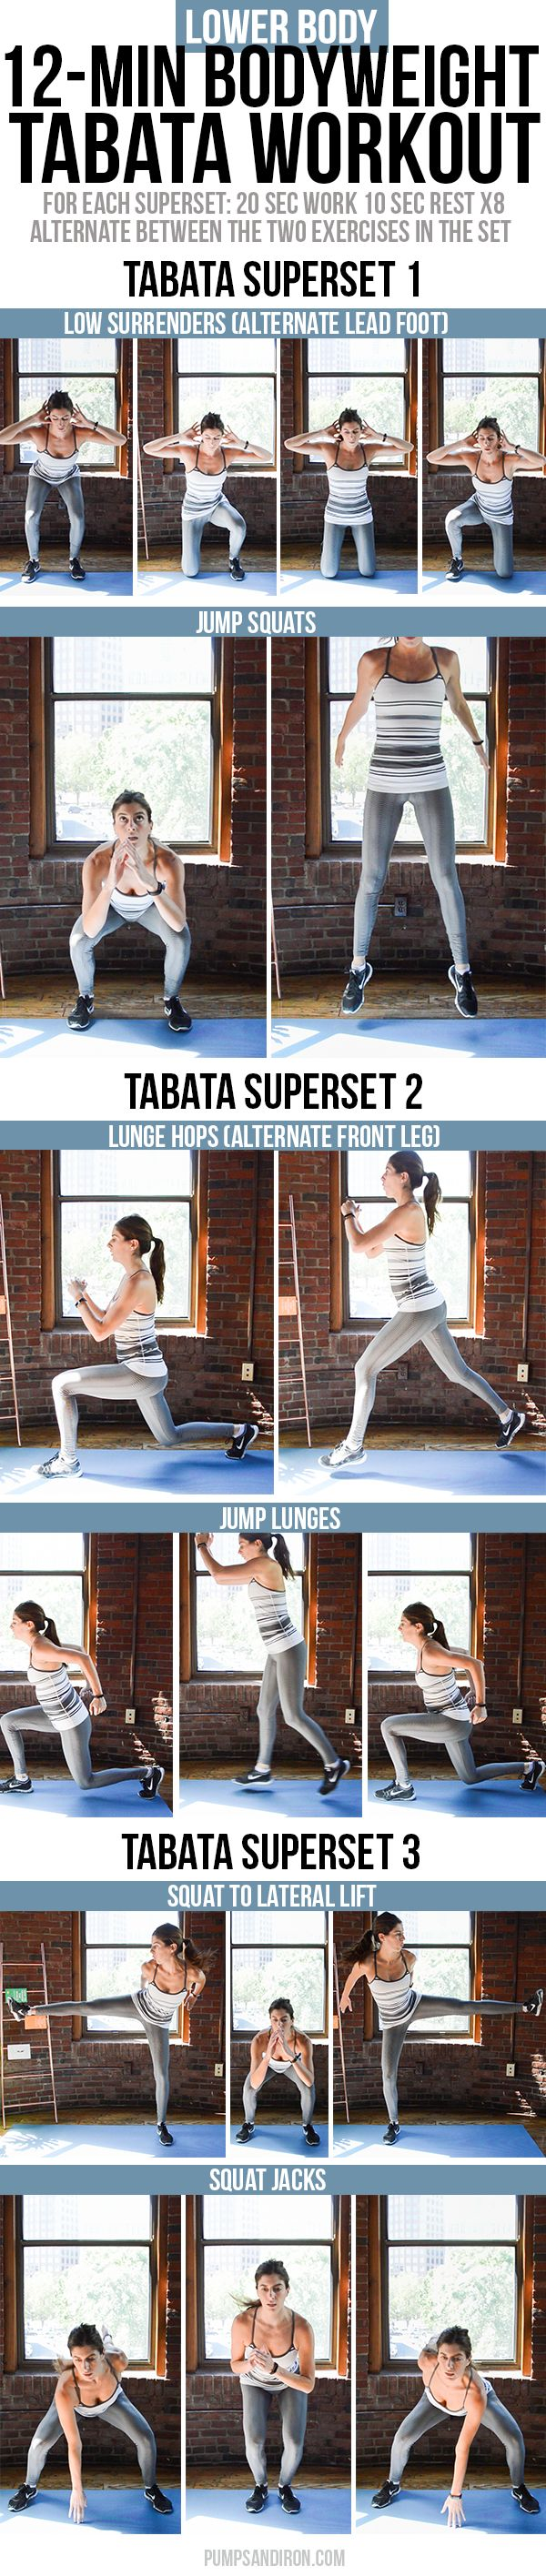 12-Minute Bodyweight Tabata Workout for Legs & Butt -- this workout is broken up into three 4-minute tabata supersets